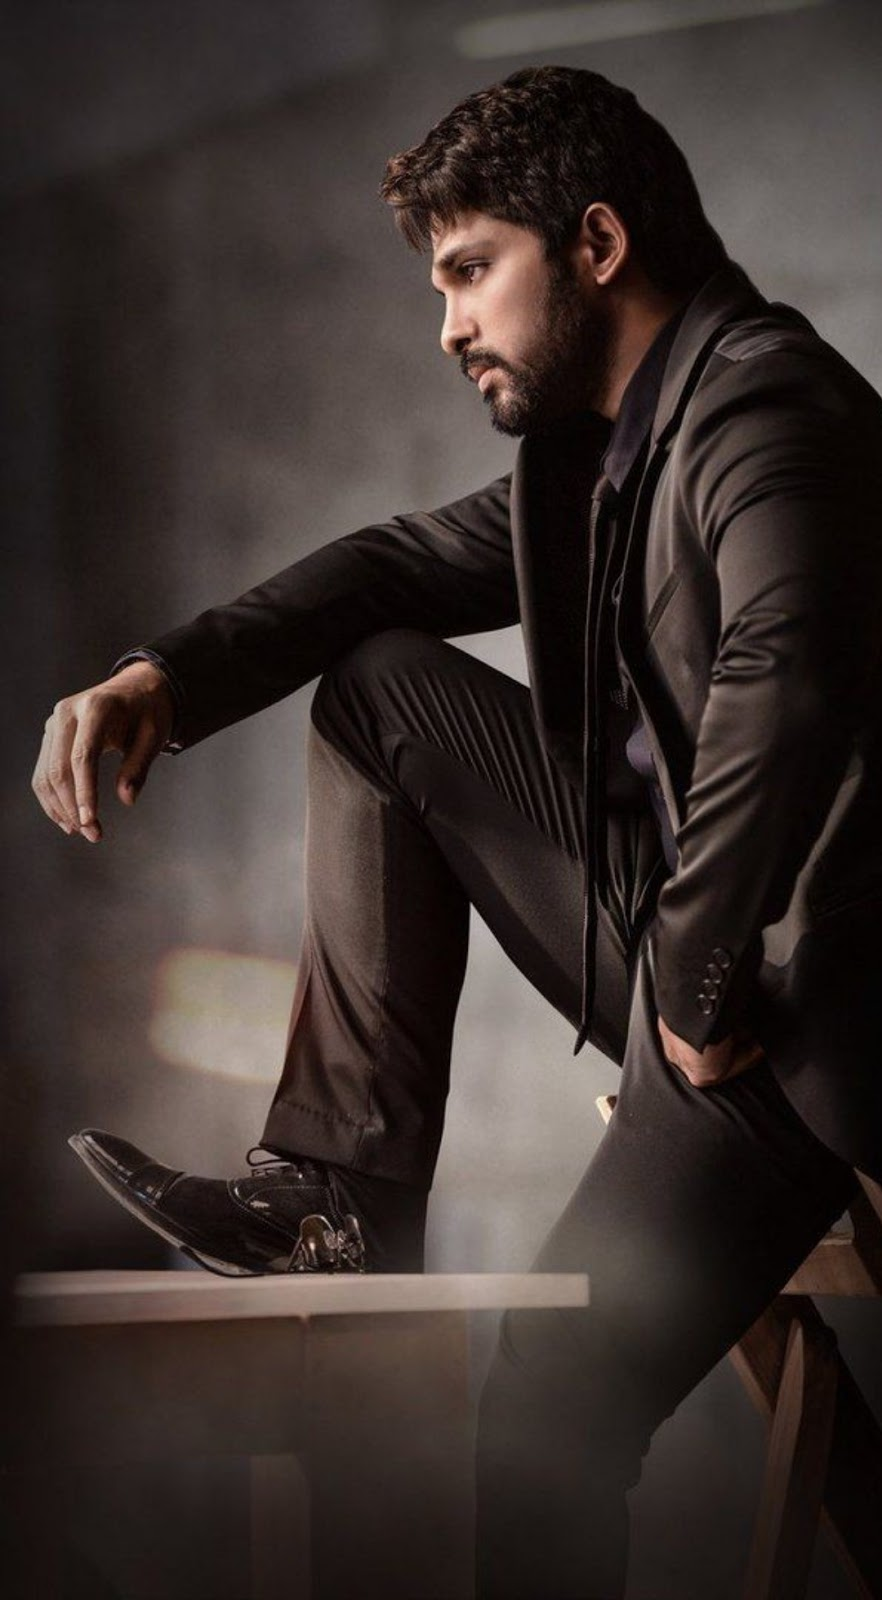 allu arjun mobile hd wallpaper - full hd wallpapers